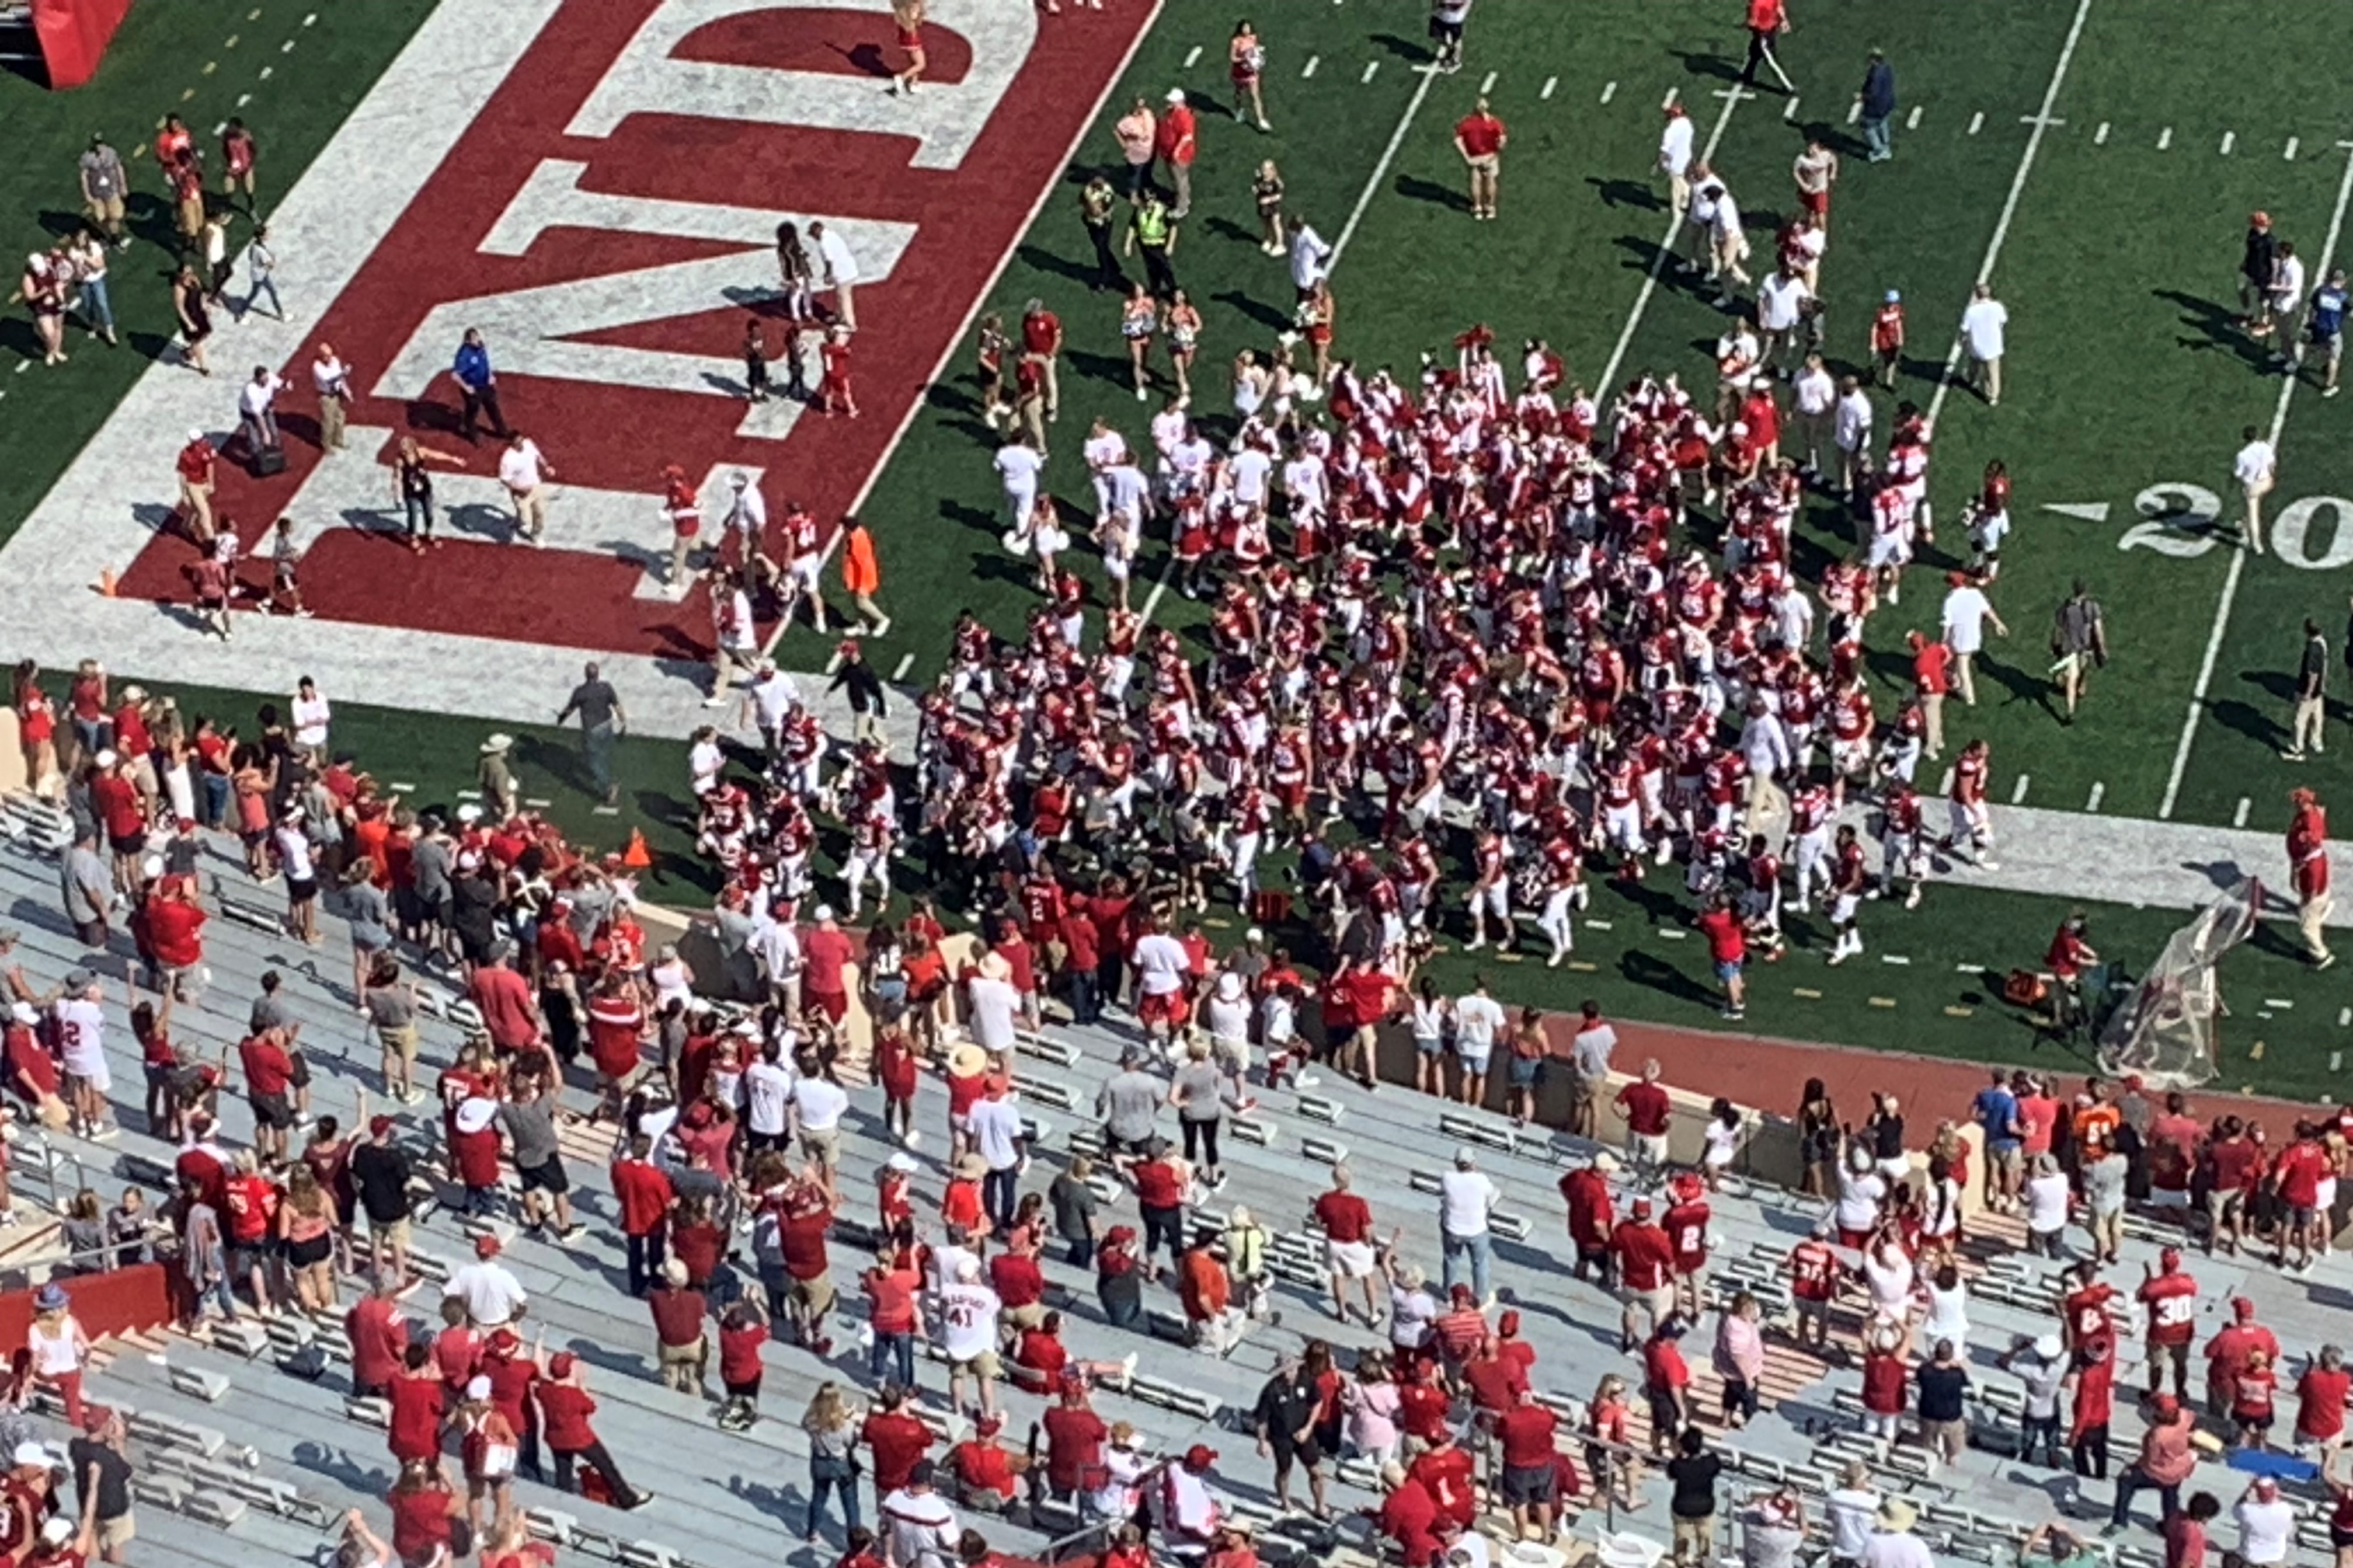 IU Football celebrates a victory over Connecticut at Memorial Stadium in September 2019.